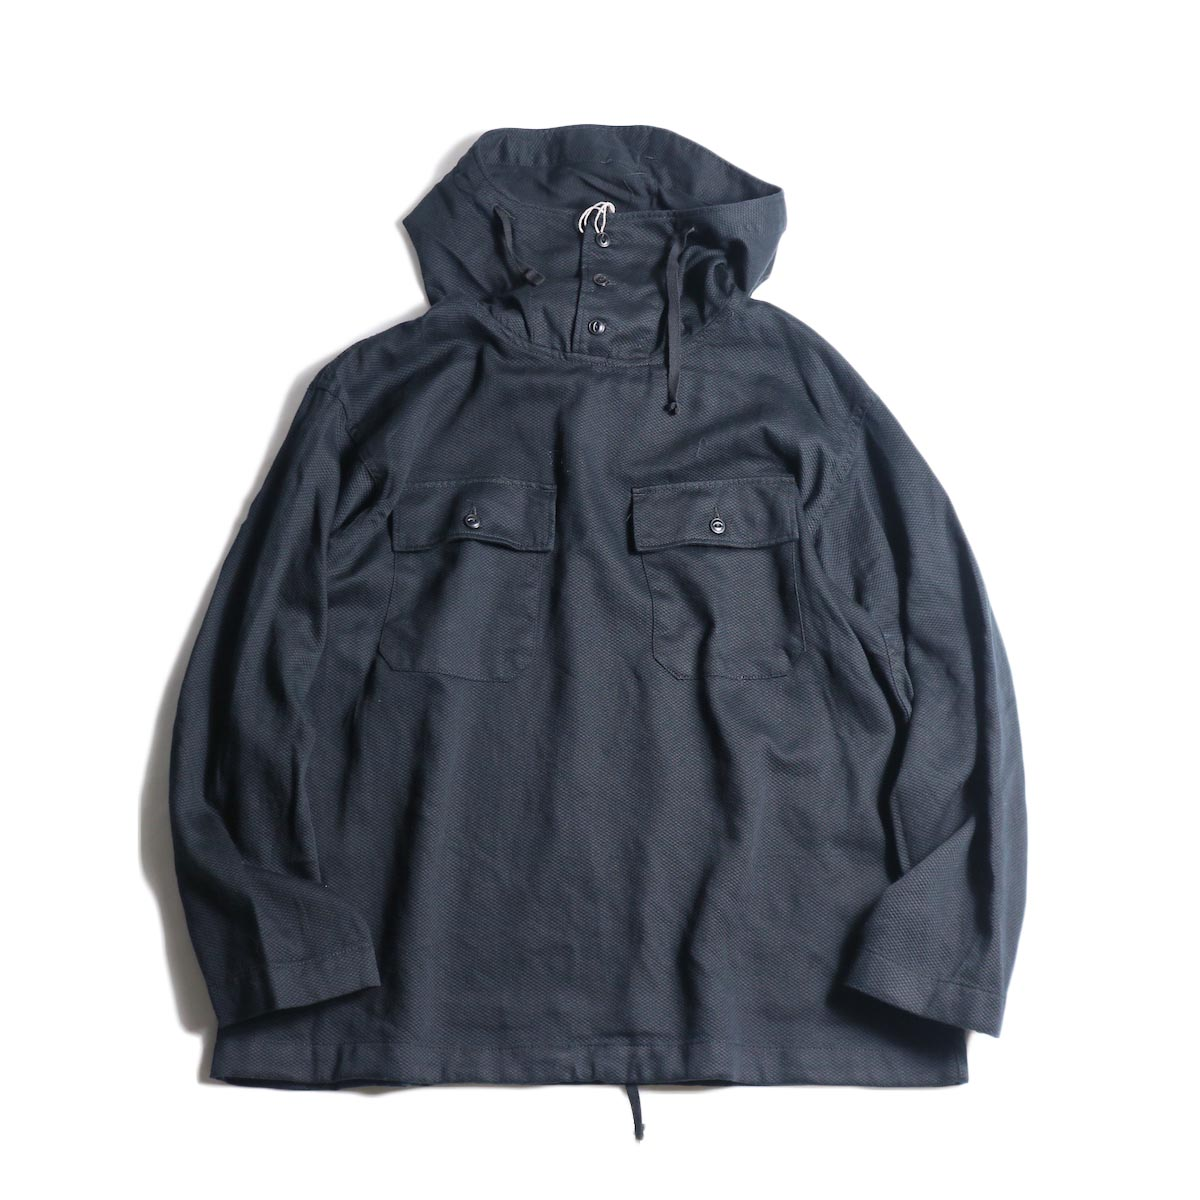 Engineered Garments / Cagoule Shirt -Waffle Pique (Black)正面